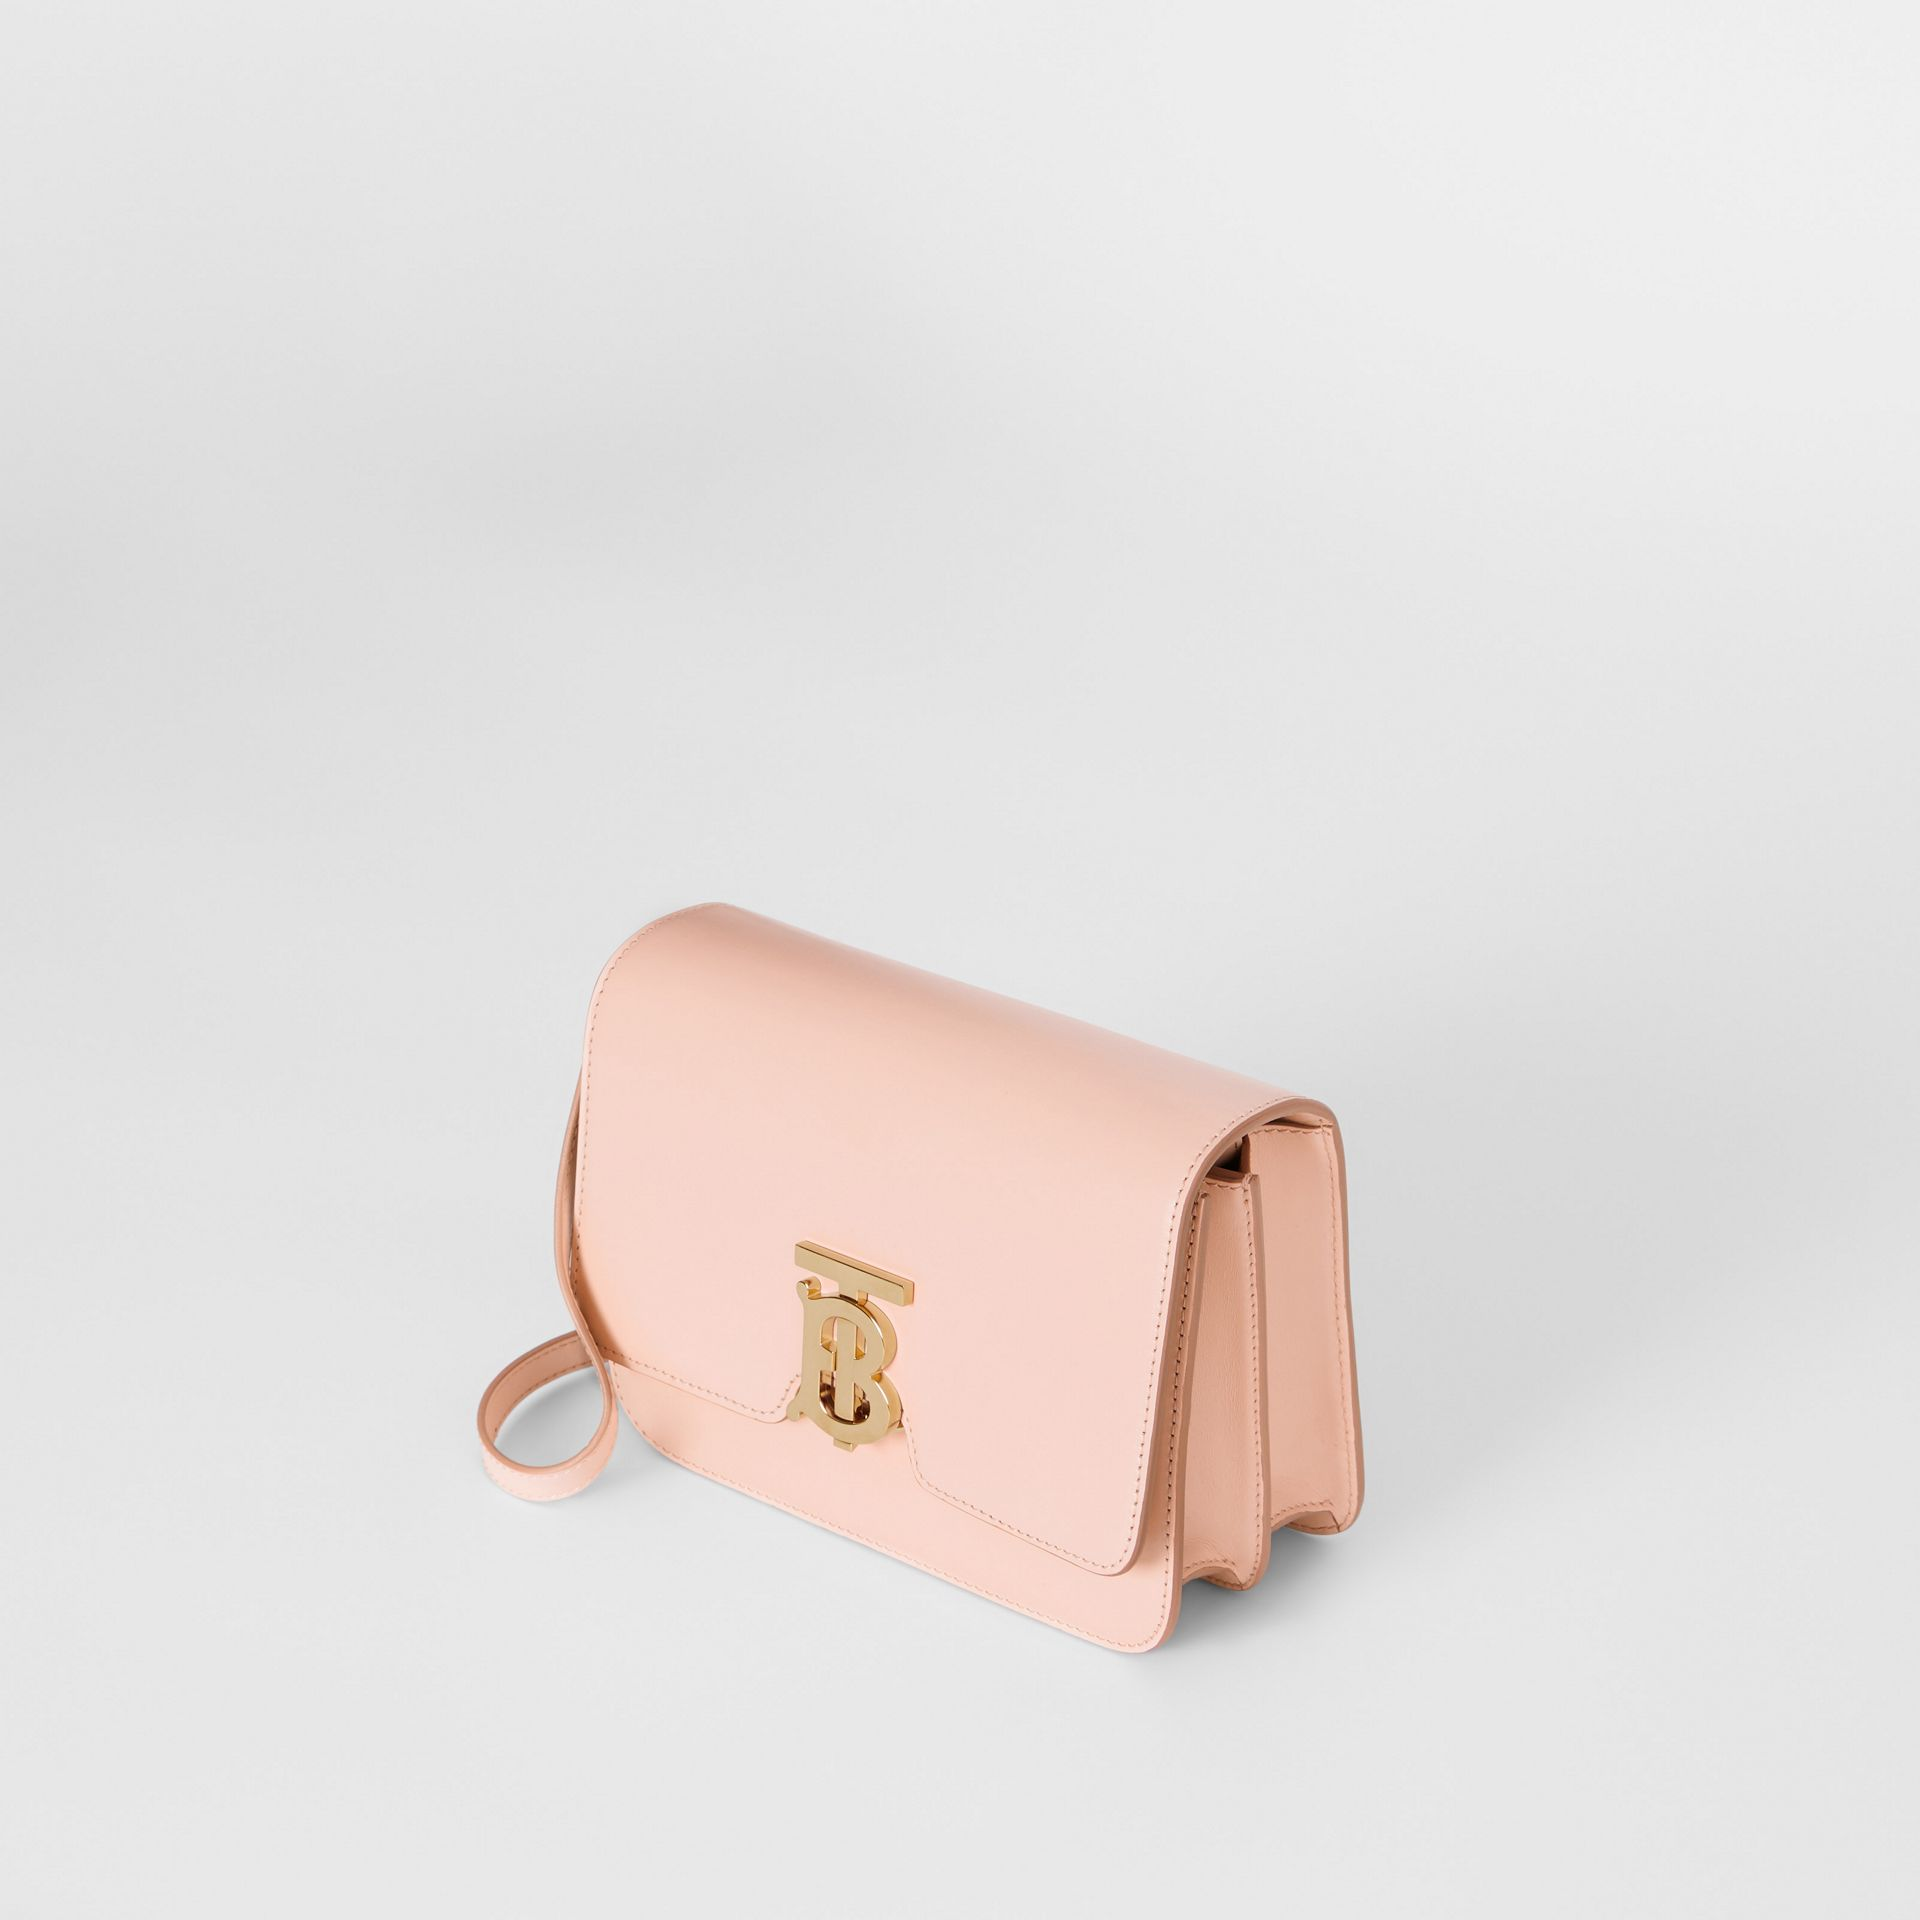 Small Leather TB Bag in Rose Beige - Women | Burberry - gallery image 3